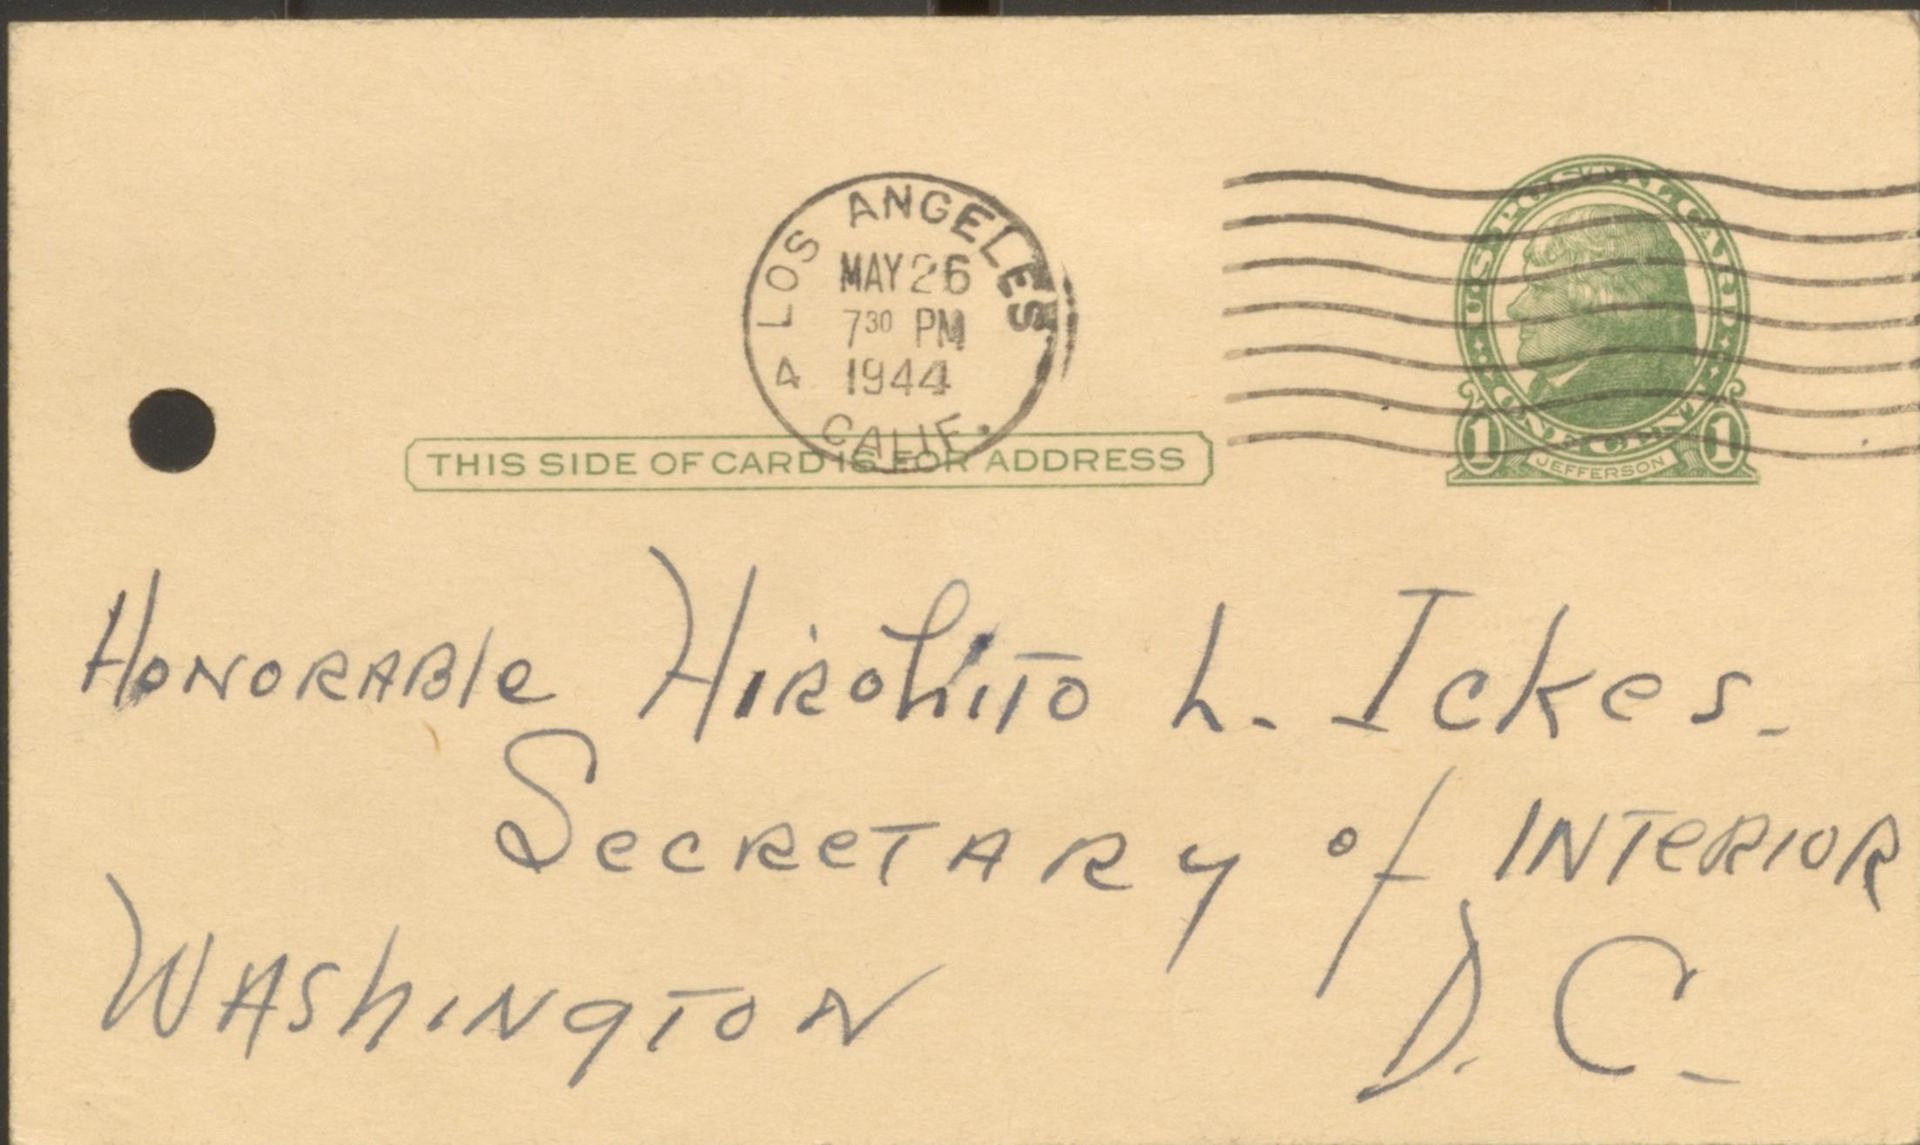 "Postcard addressed to ""Honorable Hirohito L Ickes"